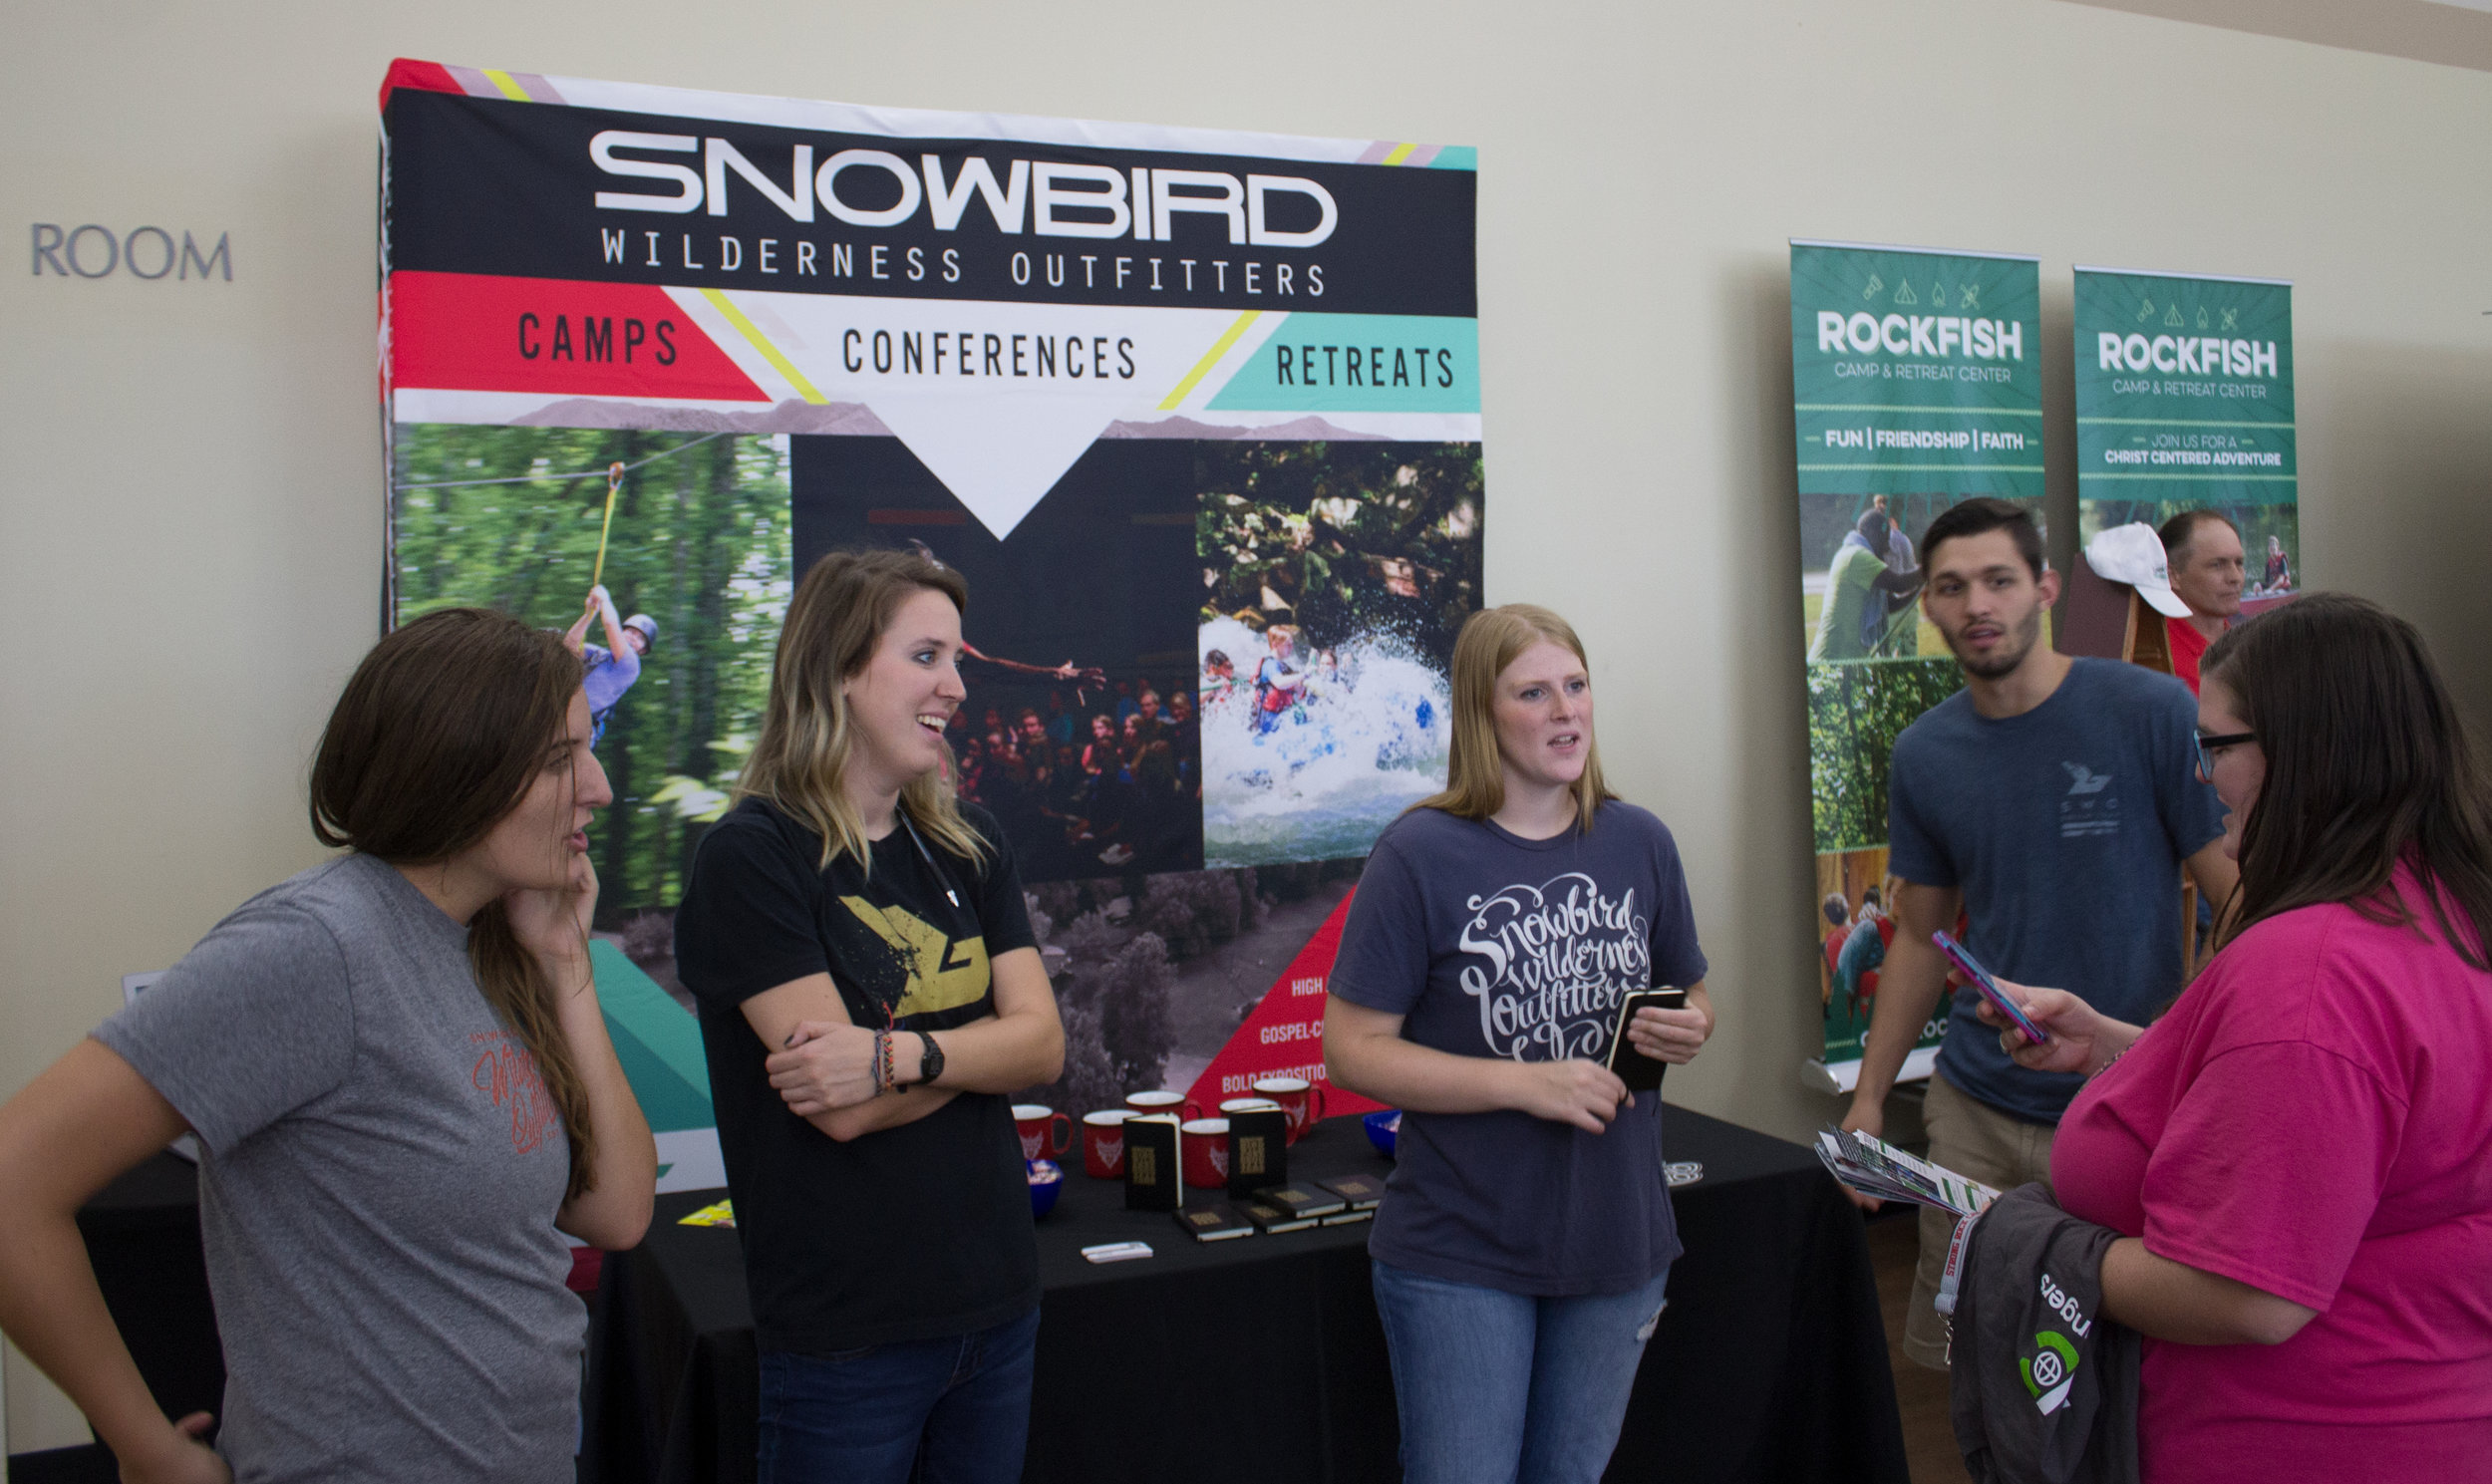 Snowbird Wildnerness Outfitters recruiters, Austin, Bridget, Tara and Karrie gleefully talk about what it's like to work at their camp.